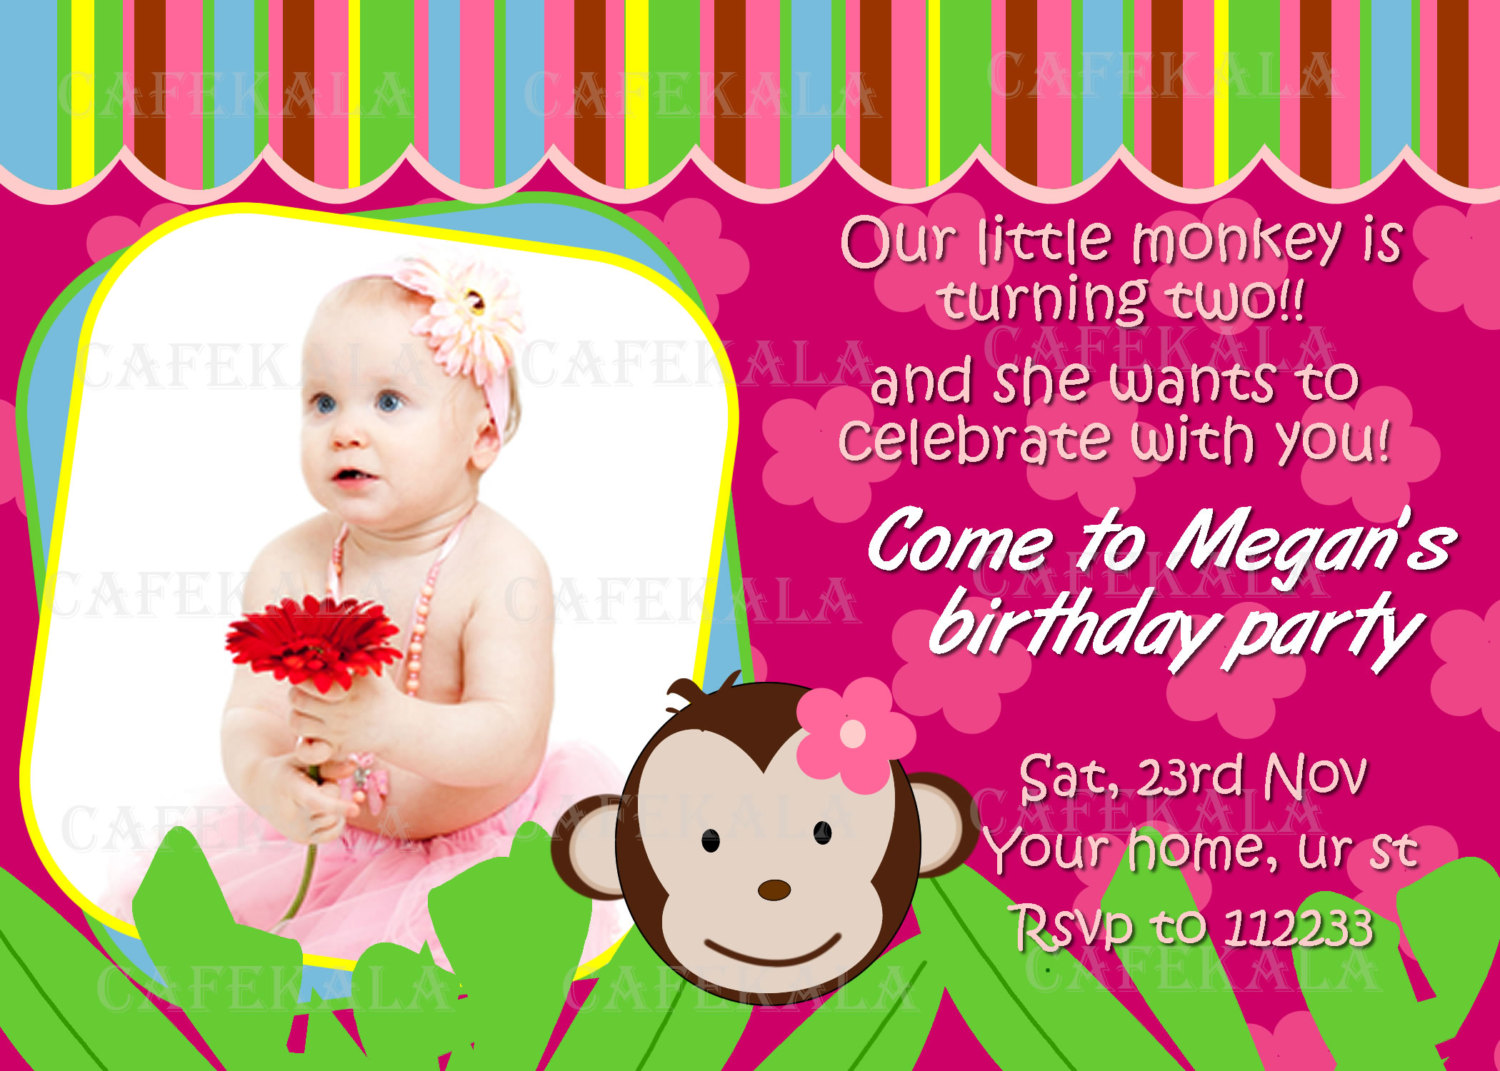 Birthday Party Card Wallpapers happy birthday party wallpaper HD 1500x1071